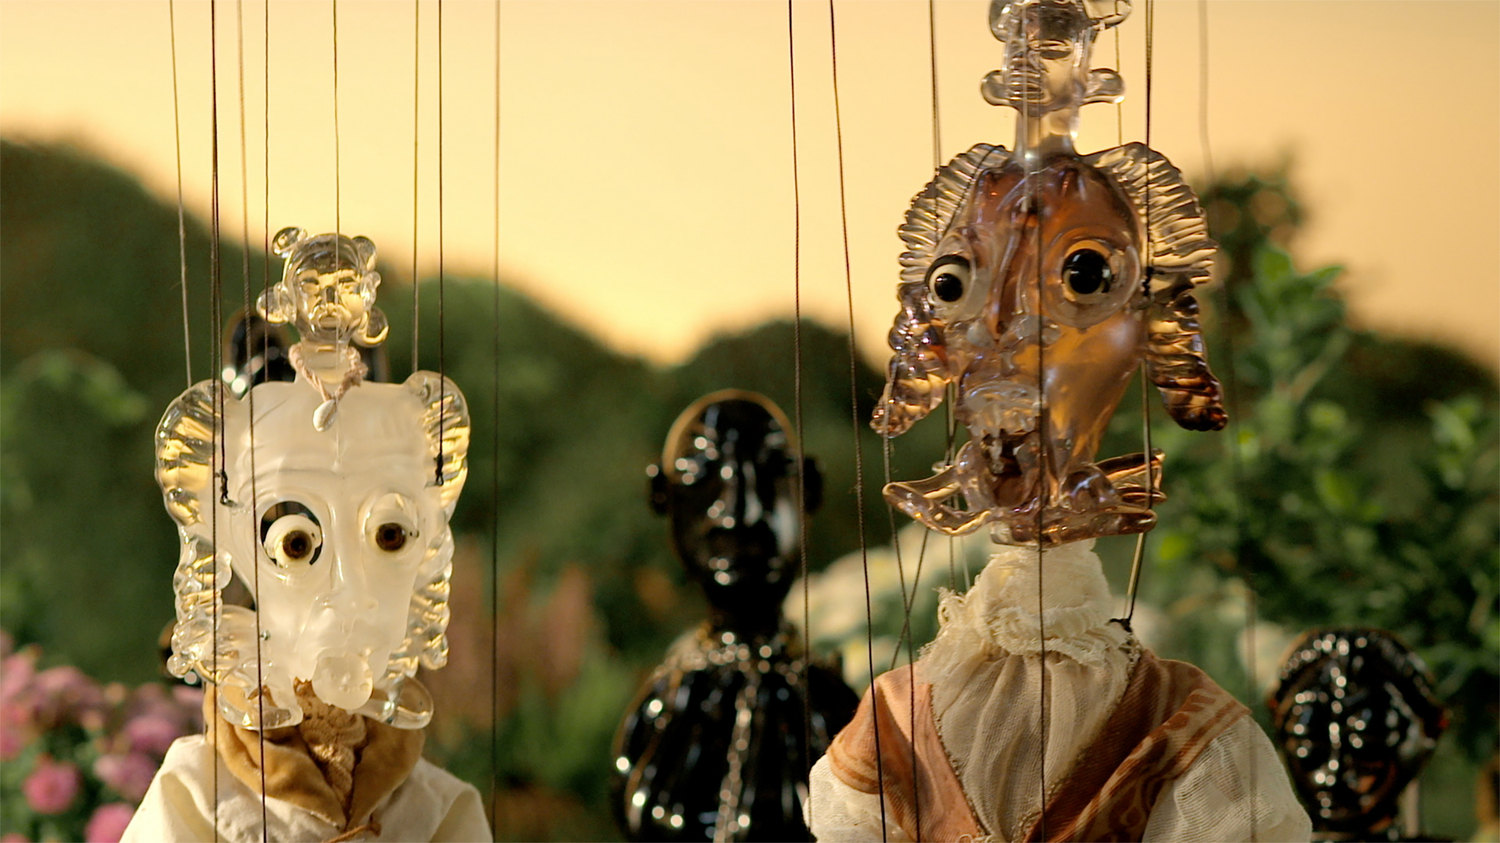 Image still from video of glass puppets on strings.